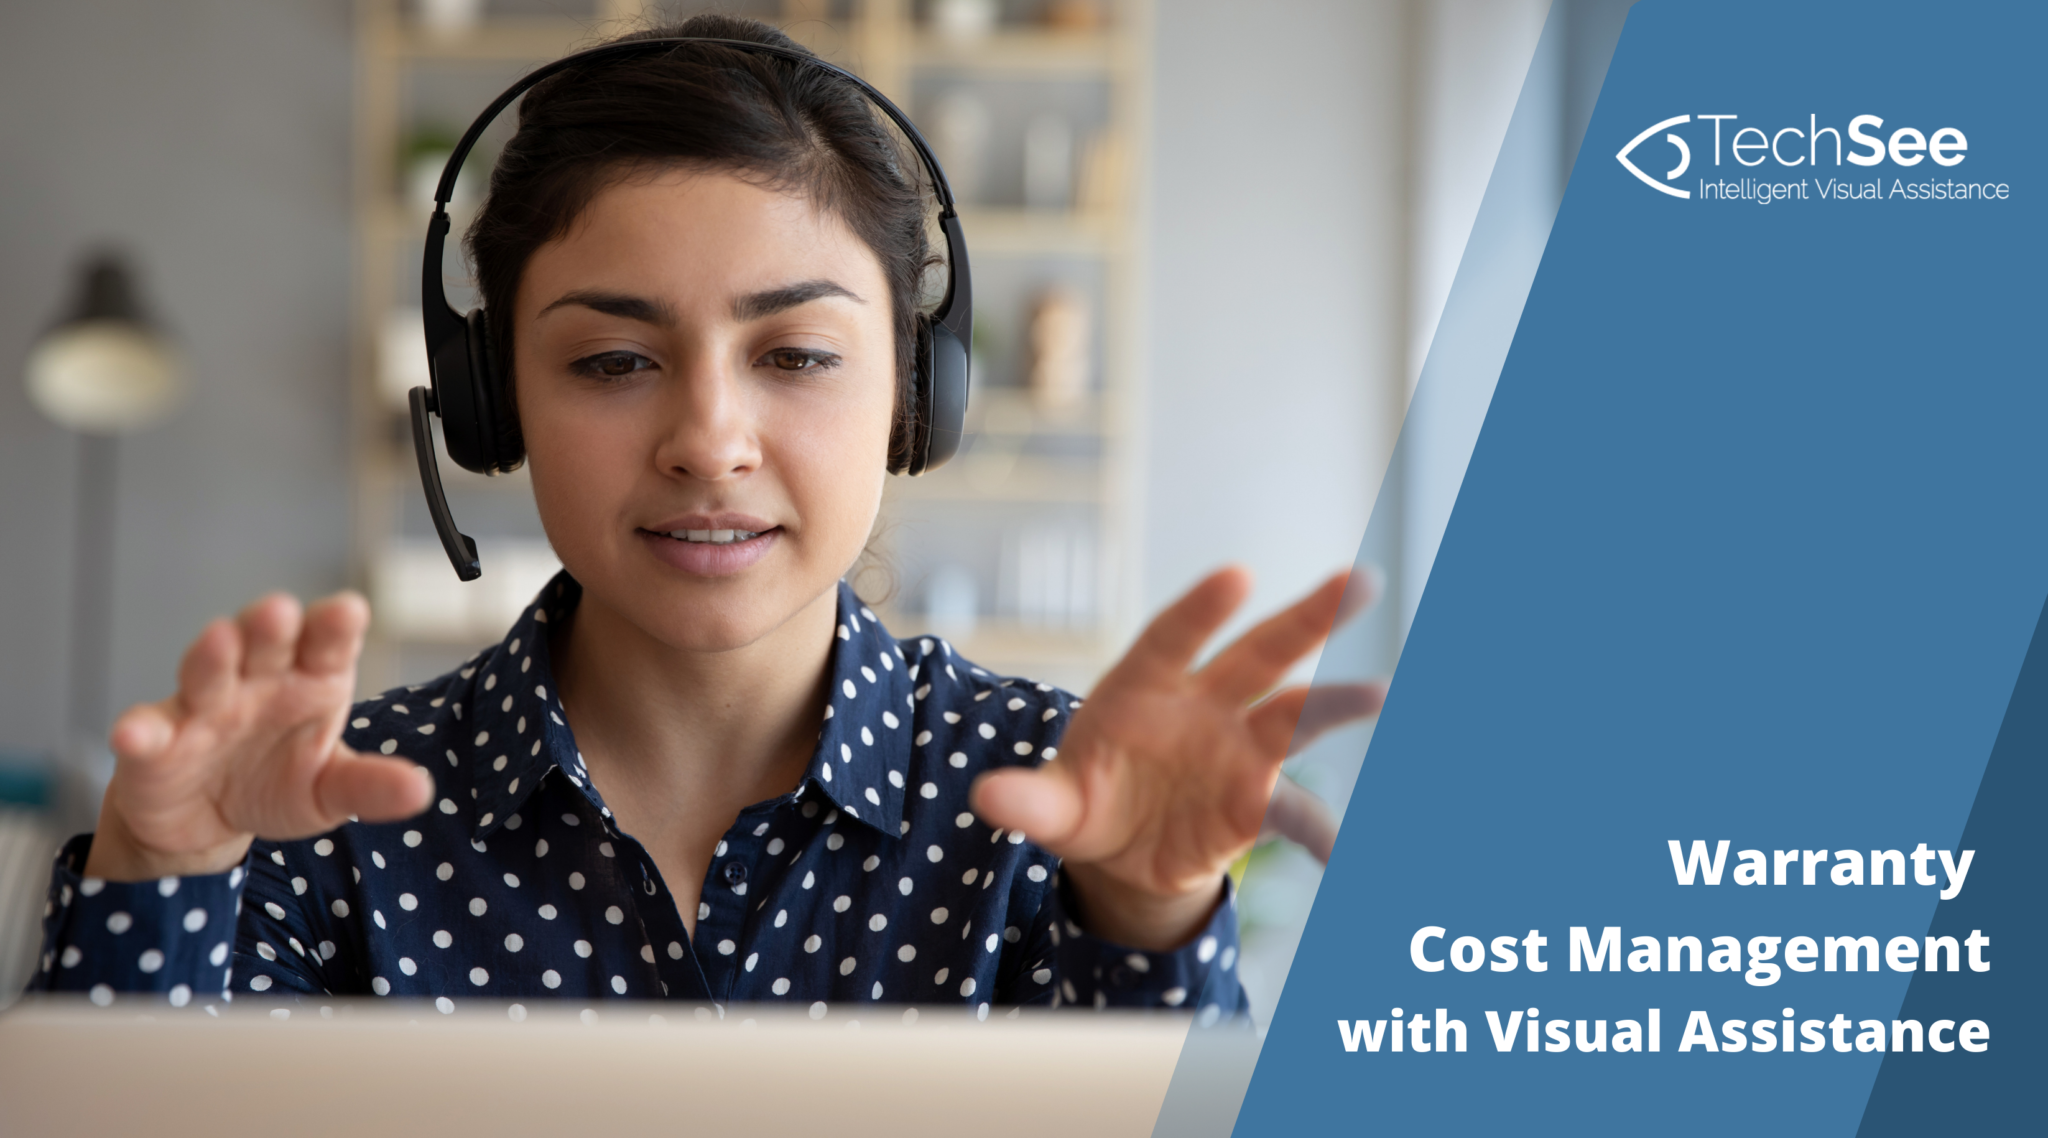 How to improve warranty management with visual assistance